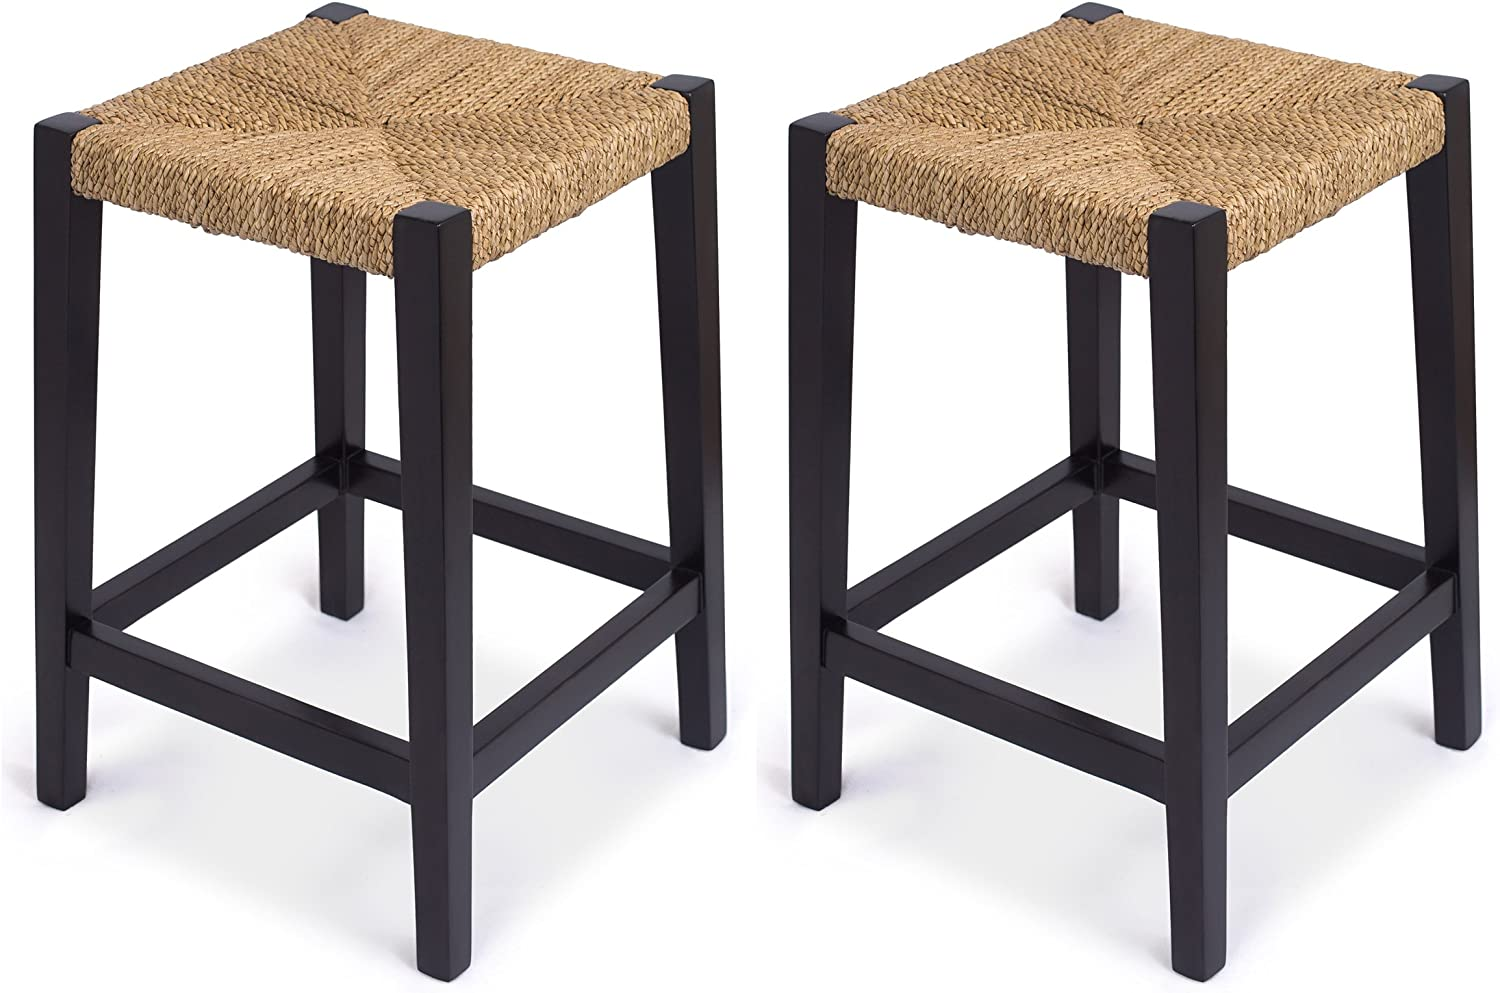 BirdRock Home Rush Weave Backless Counter Stool – Set of 2-24 Inch Counter Height – Traditionally Woven Kitchen Dining Room Counter Stool Chair – Wooden Furniture – Fully Assembled – Black Finish